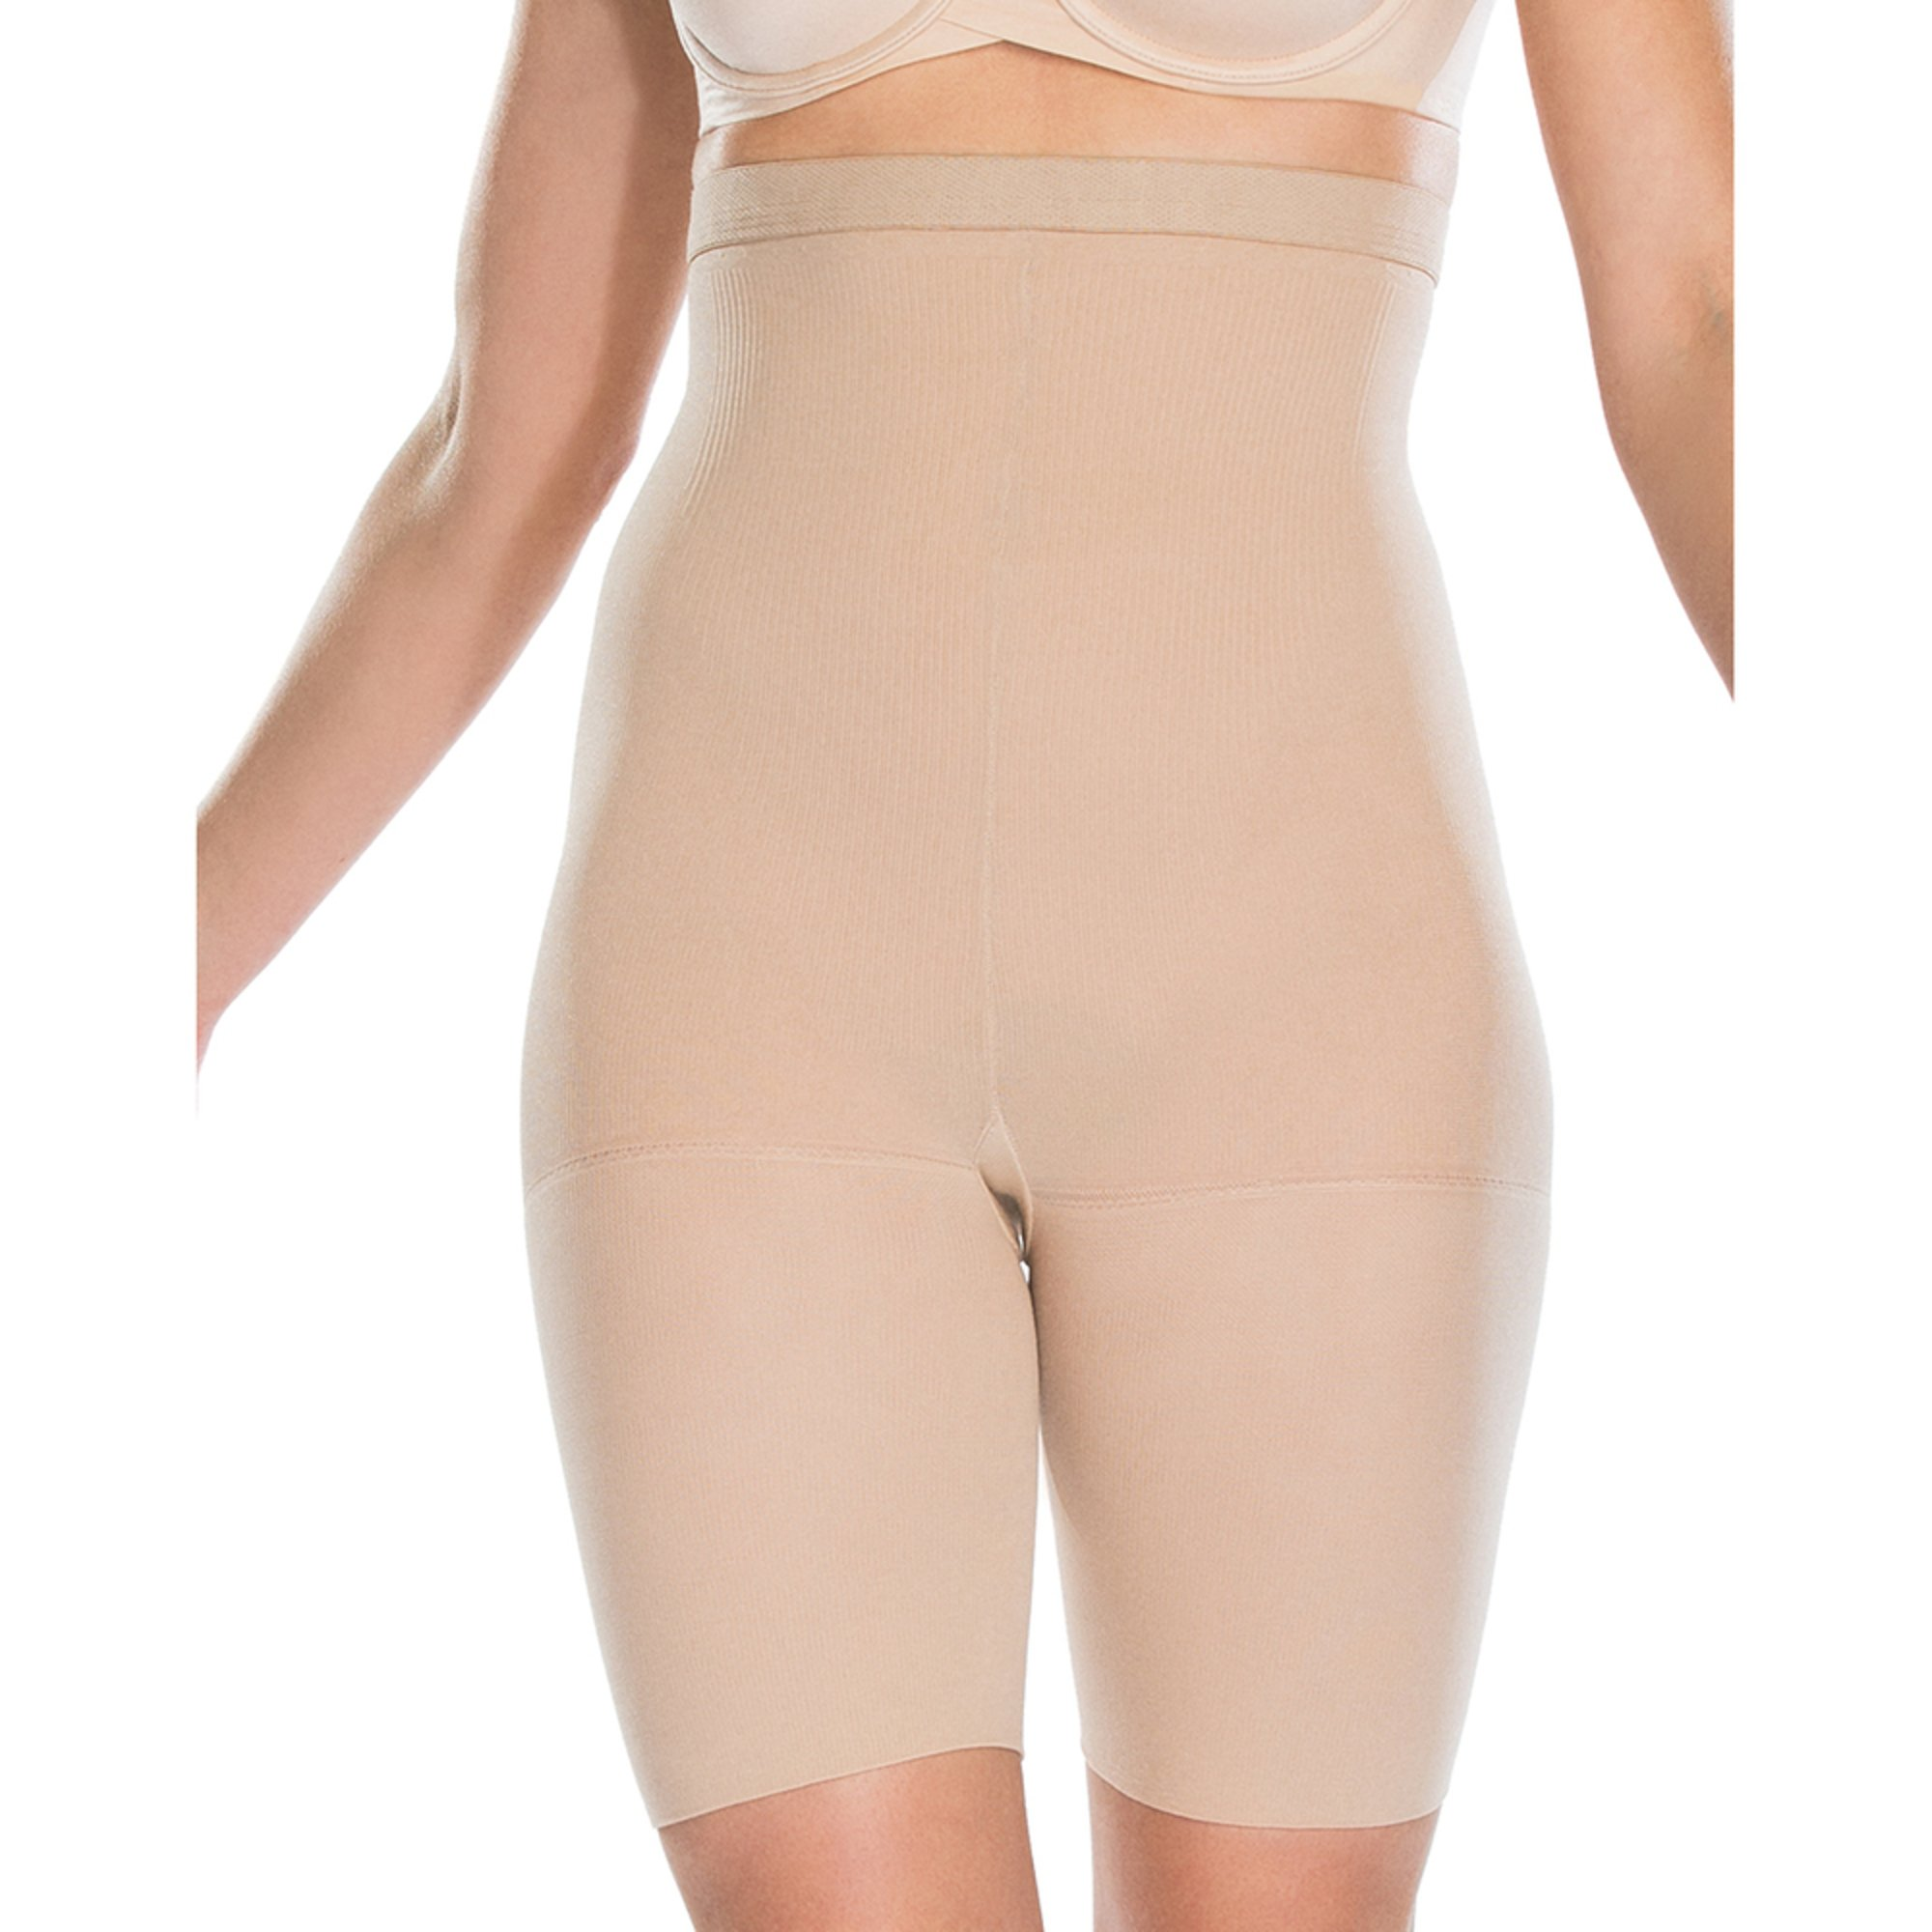 bec75ec8c ASSETS Red Hot Label by Spanx. Red Hot by Spanx Packaged High Waist Mid-Thigh  Shaper Nude